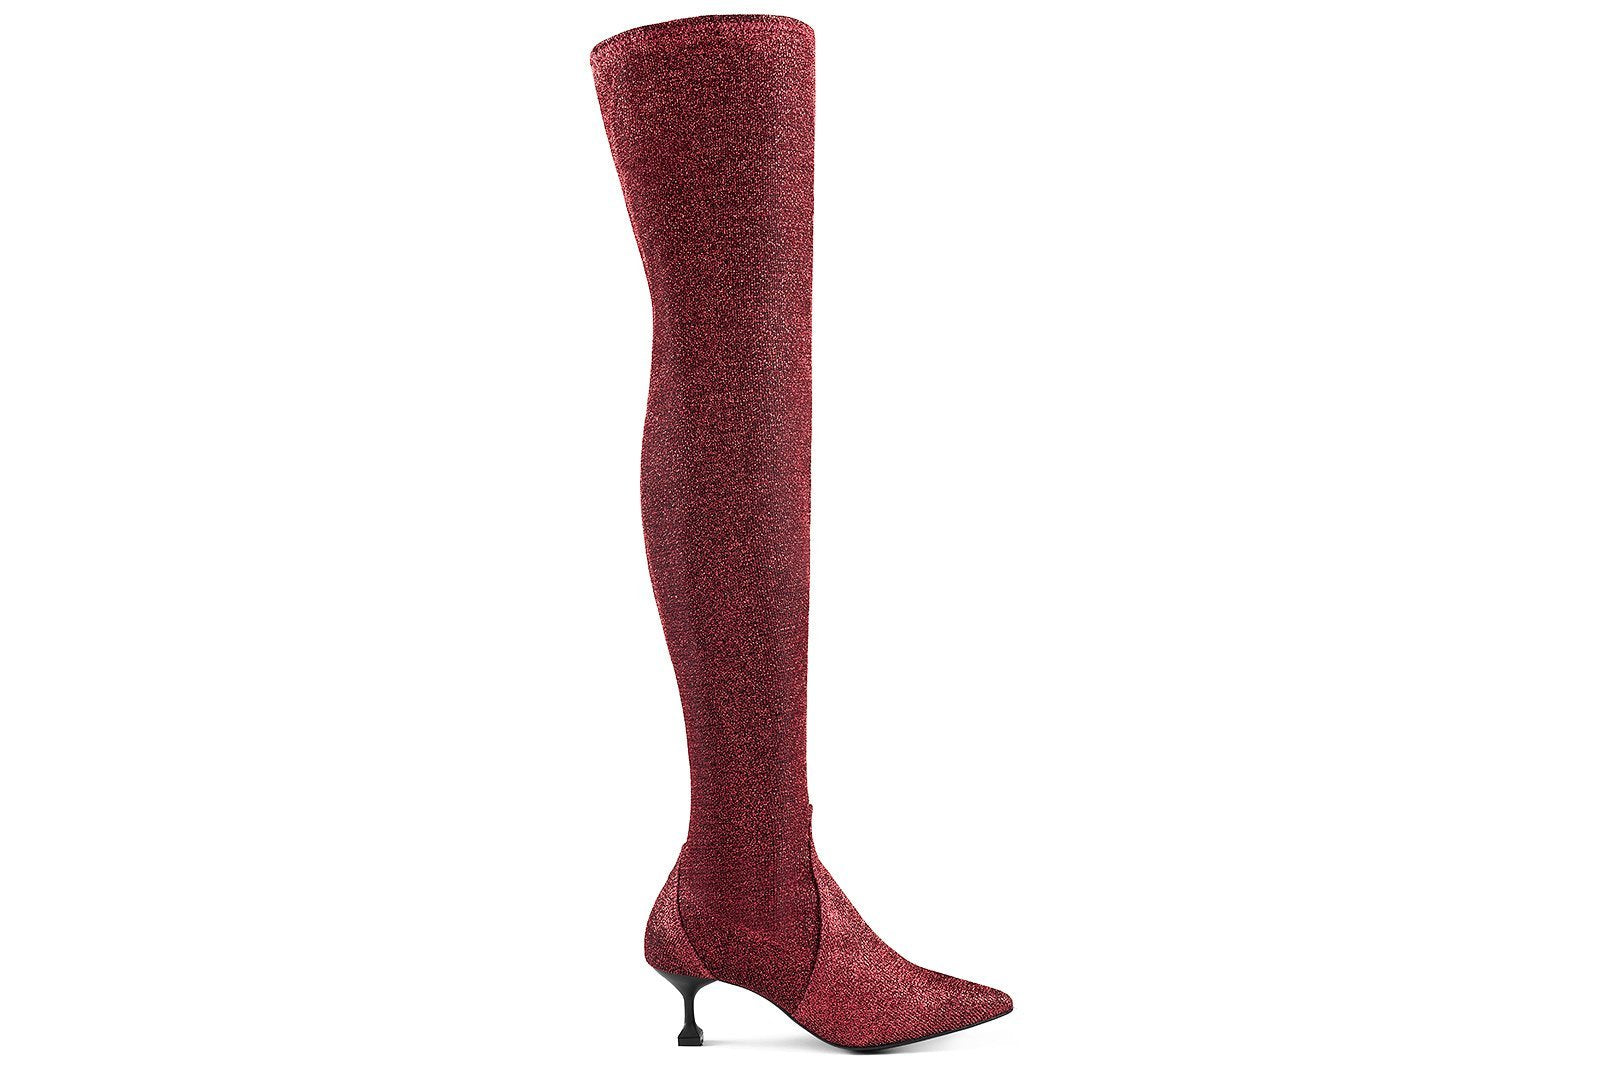 Stretchy Boots Red-MARSALA-HOUSE of BOTTA